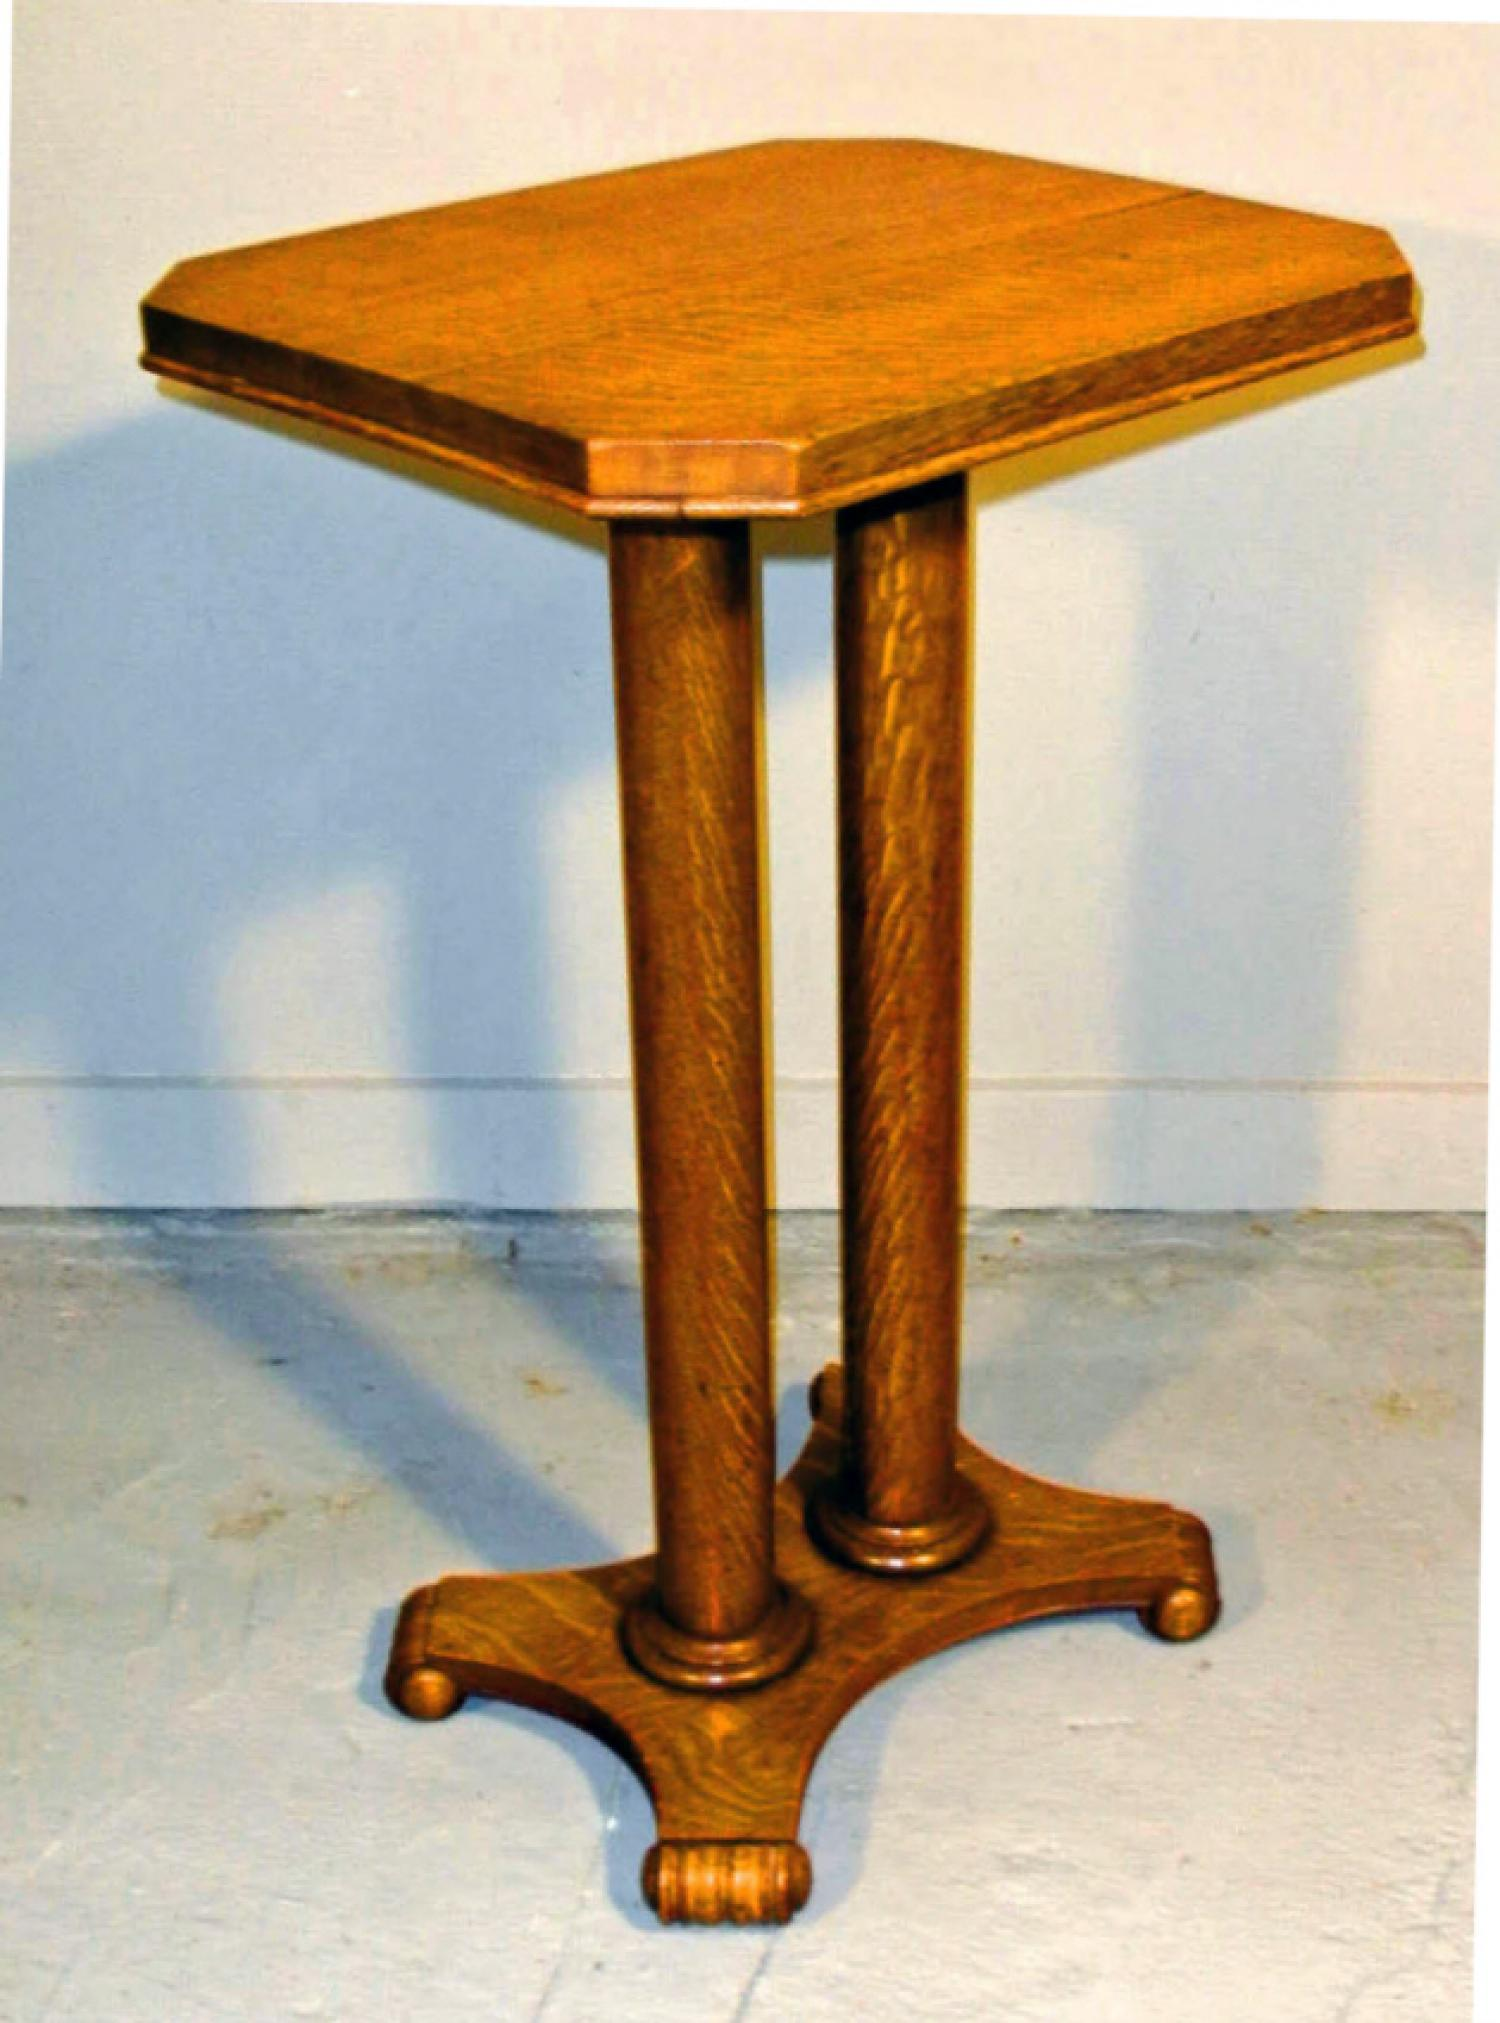 American Arts and Crafts oak pedestal or table